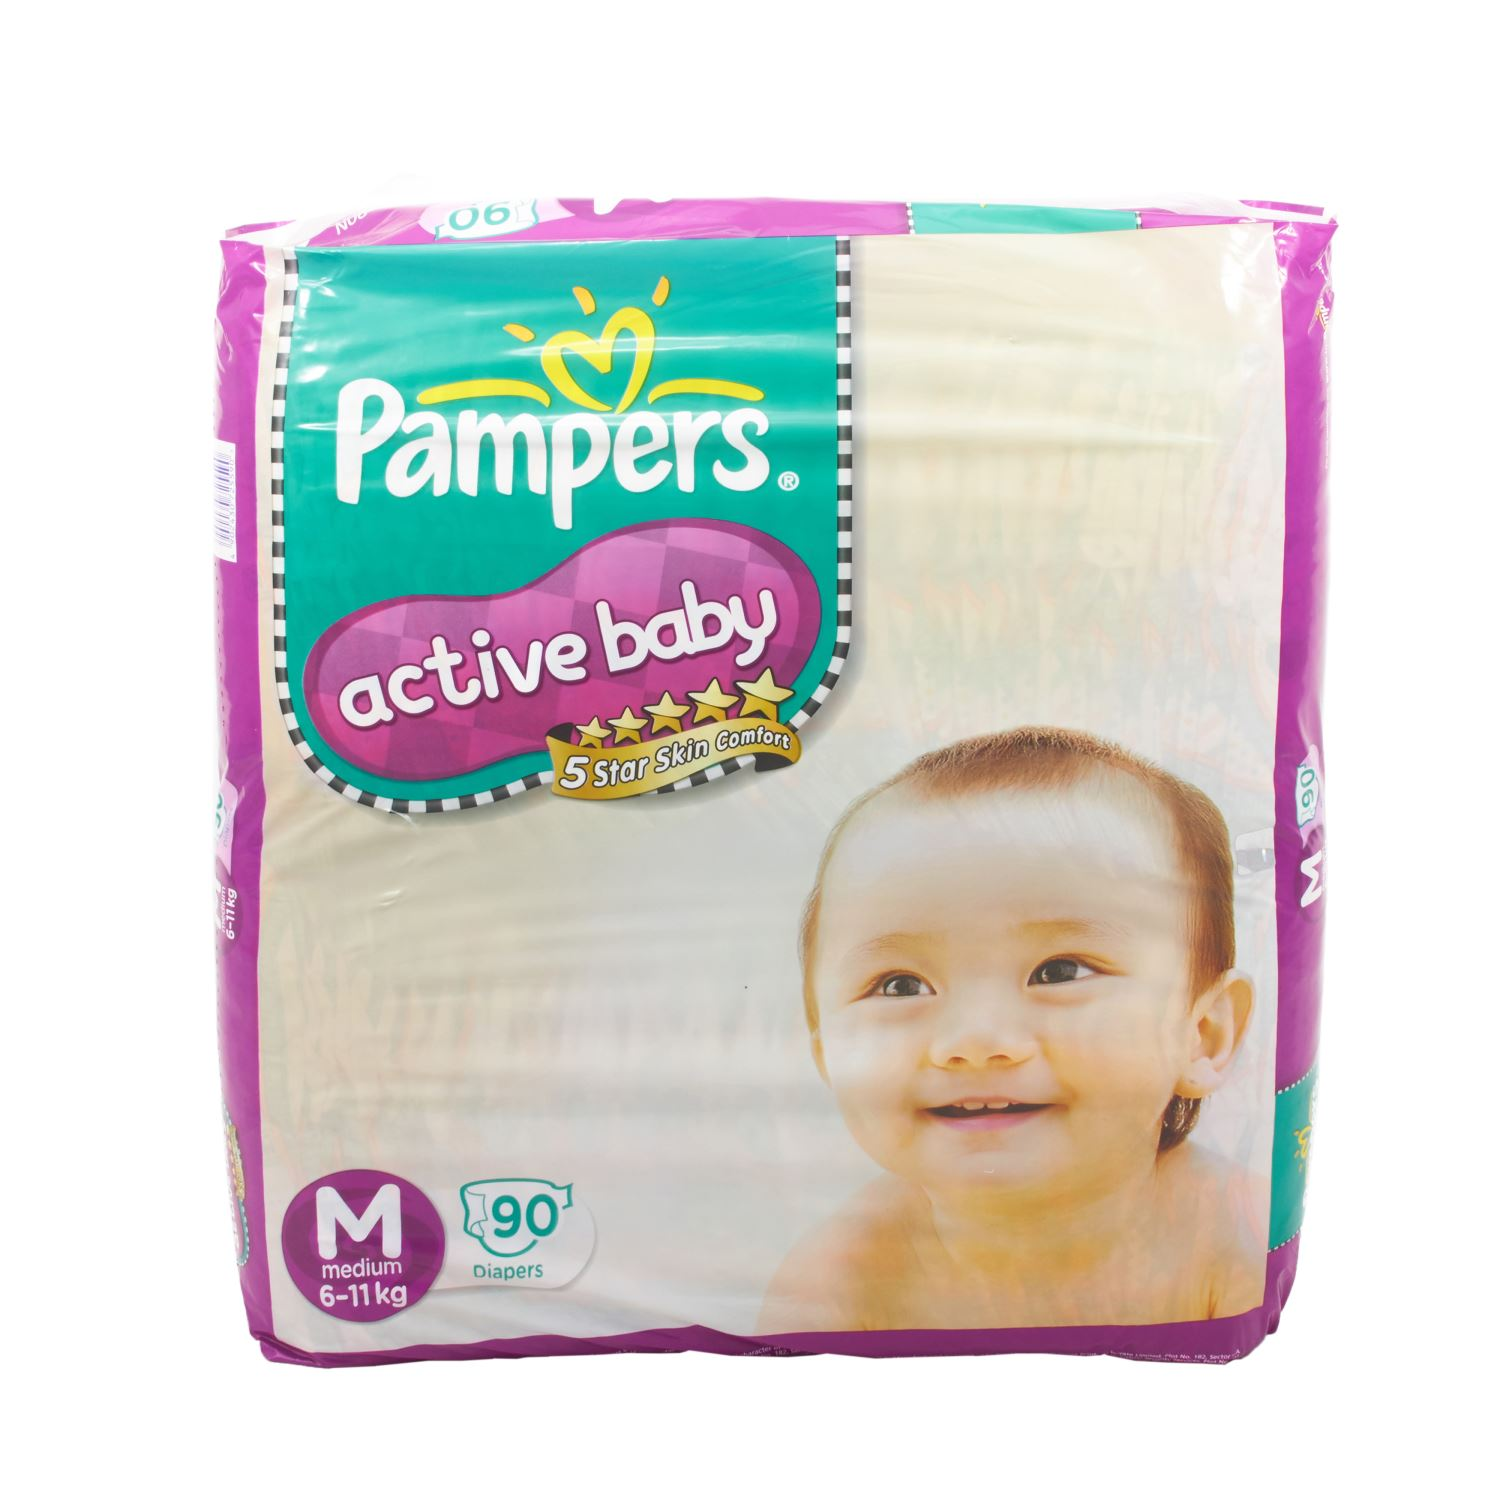 Pampers Active Baby Diapers Medium - 90 Nos